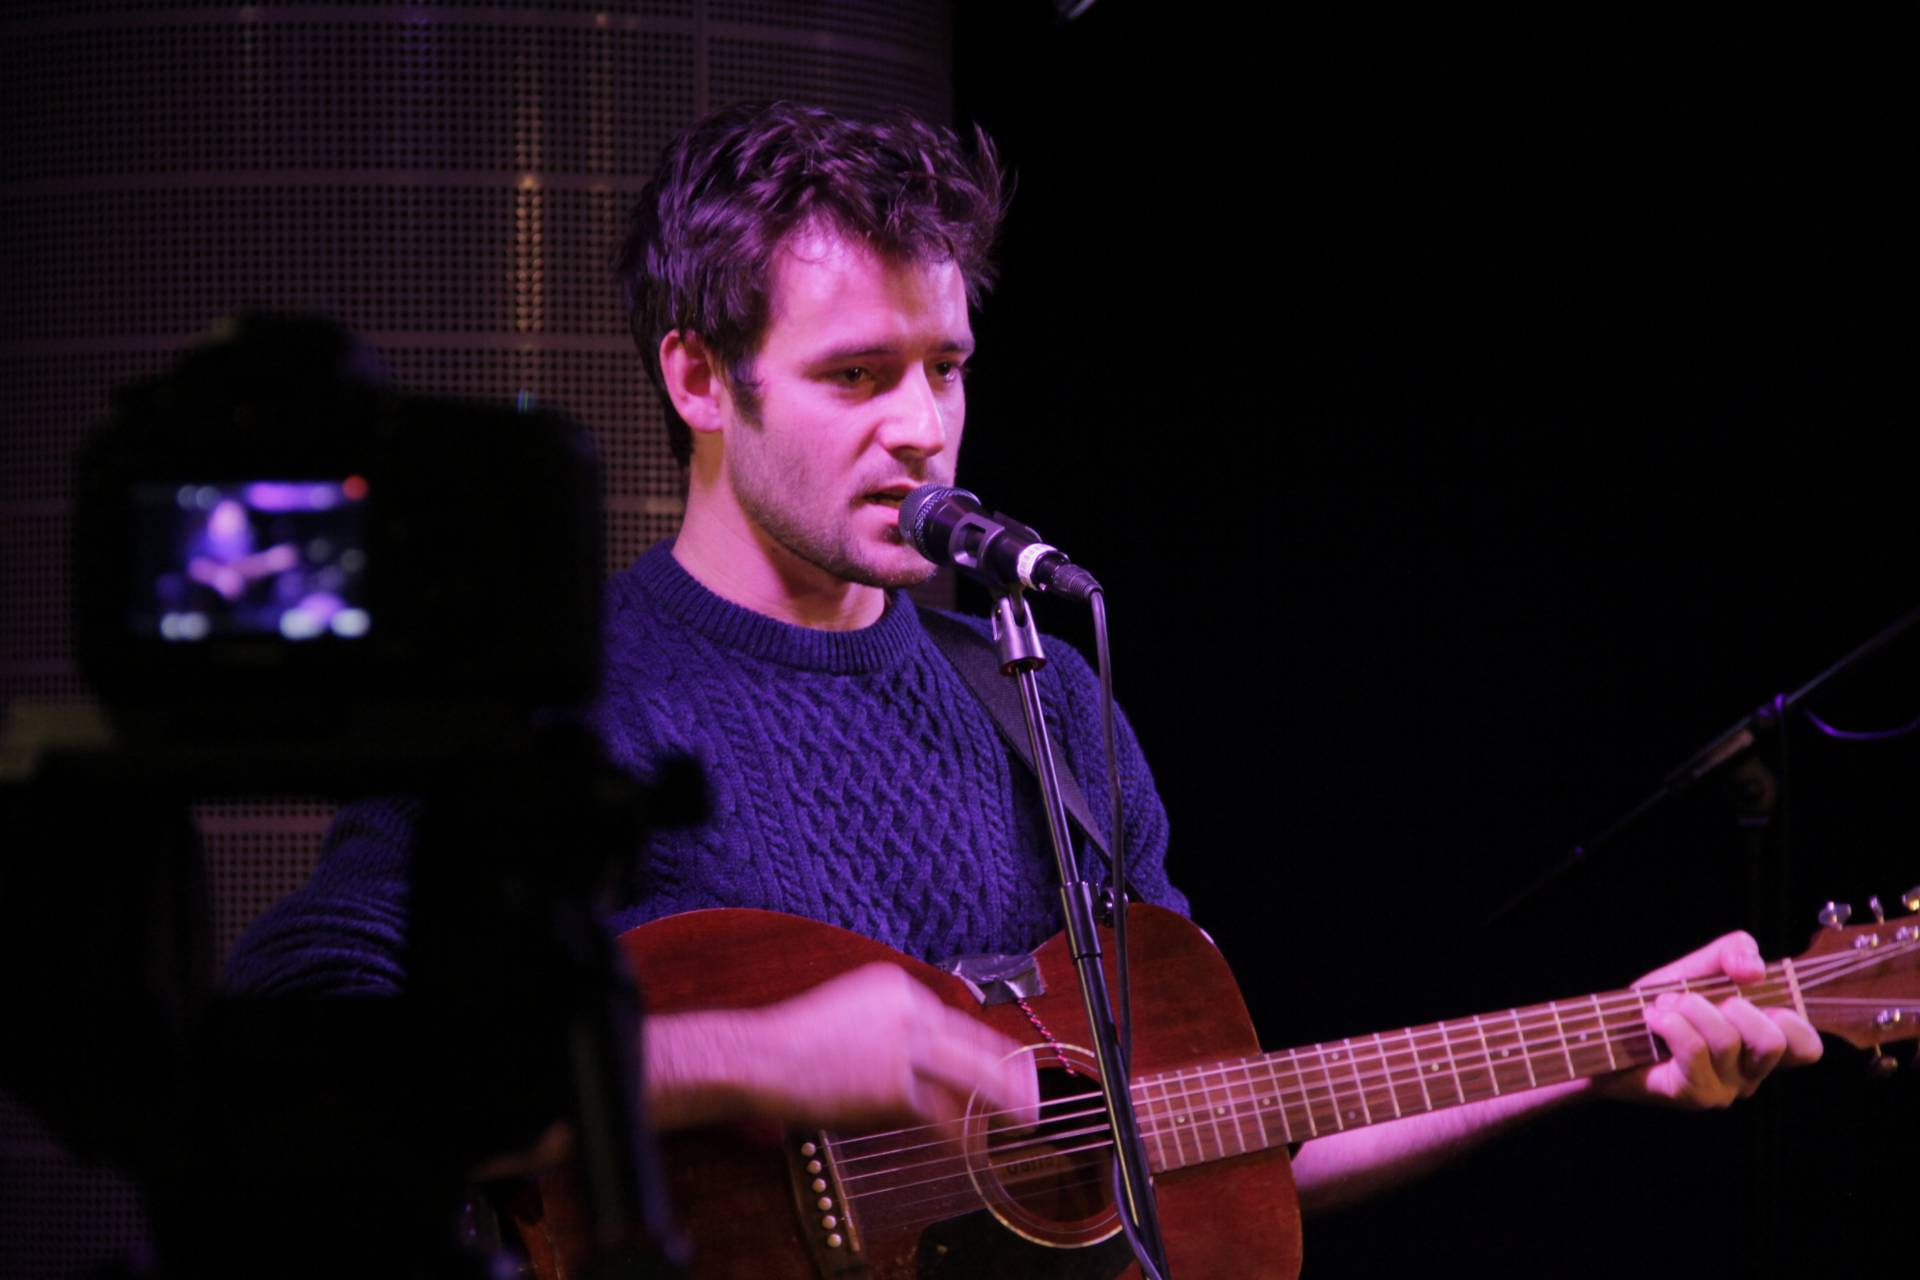 Roo Panes performing at Secret Sessions @ the Hospital Club, London